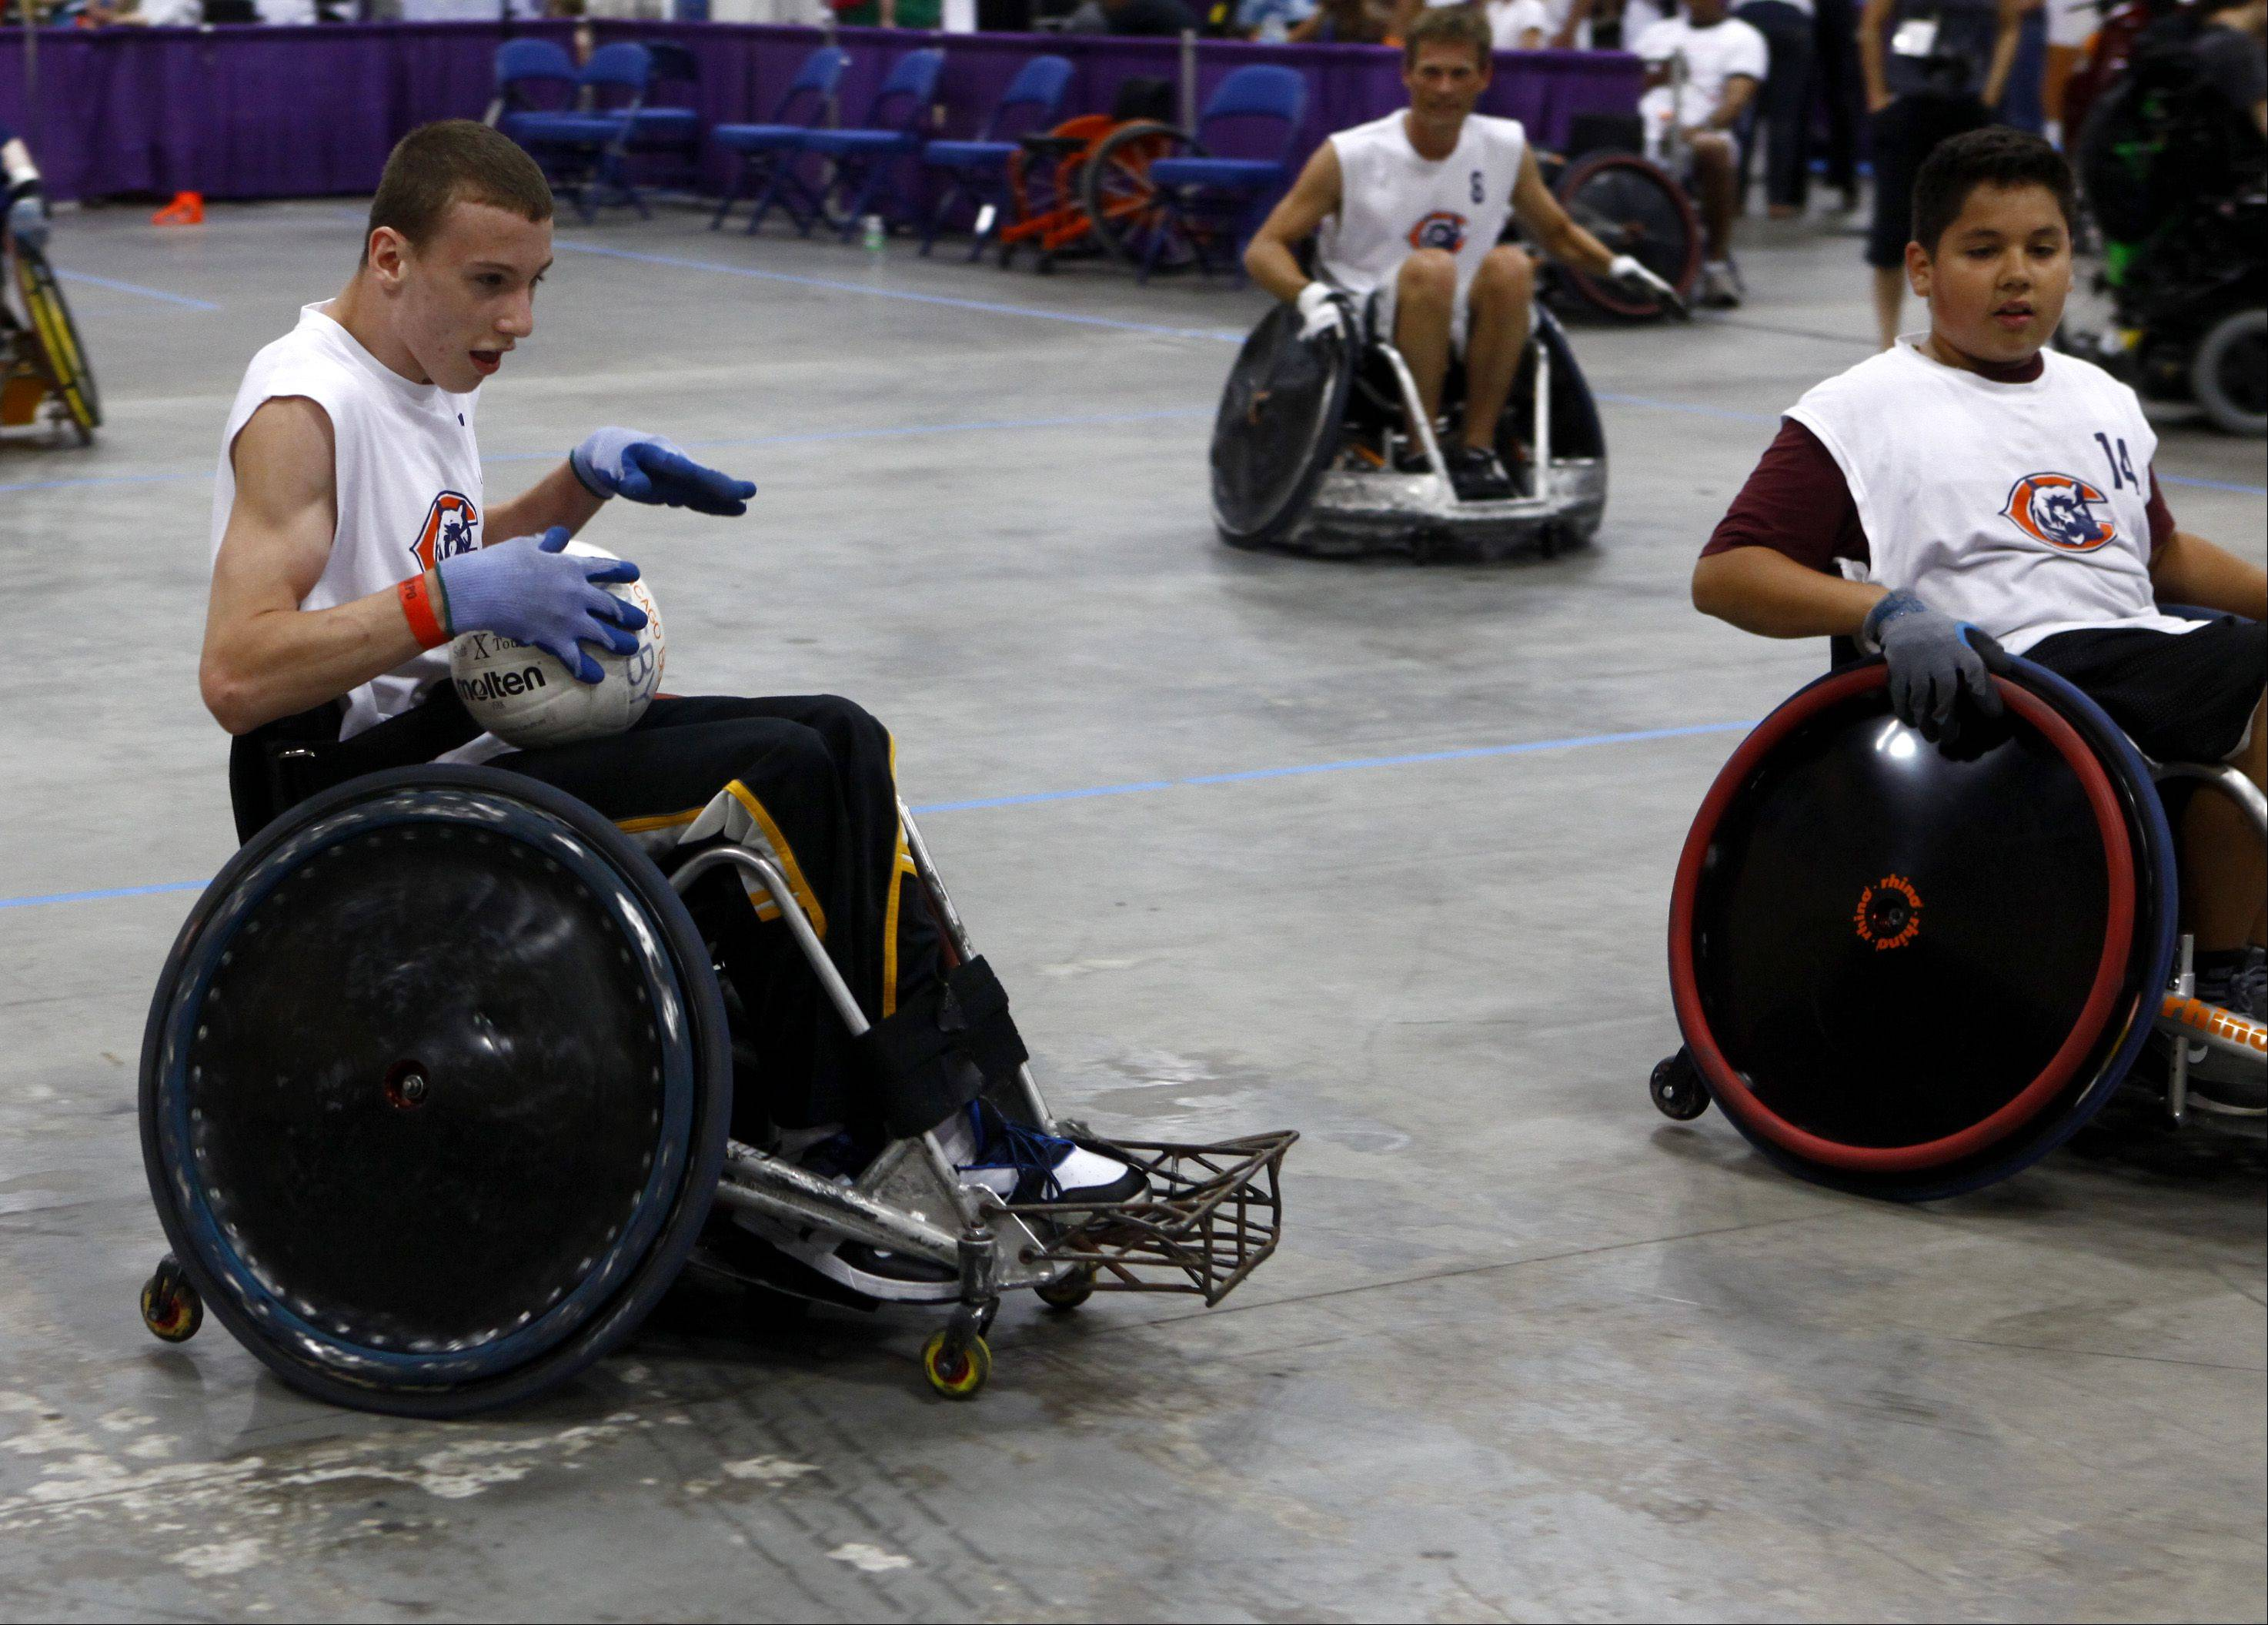 Matt Molenkamp, of Itasca, comes in for a goal during a game of wheelchair rugby at the annual Abilities Expo Sunday at the Schaumburg convention center. Molenkamp is part of the RIC Bears wheelchair rugby team.